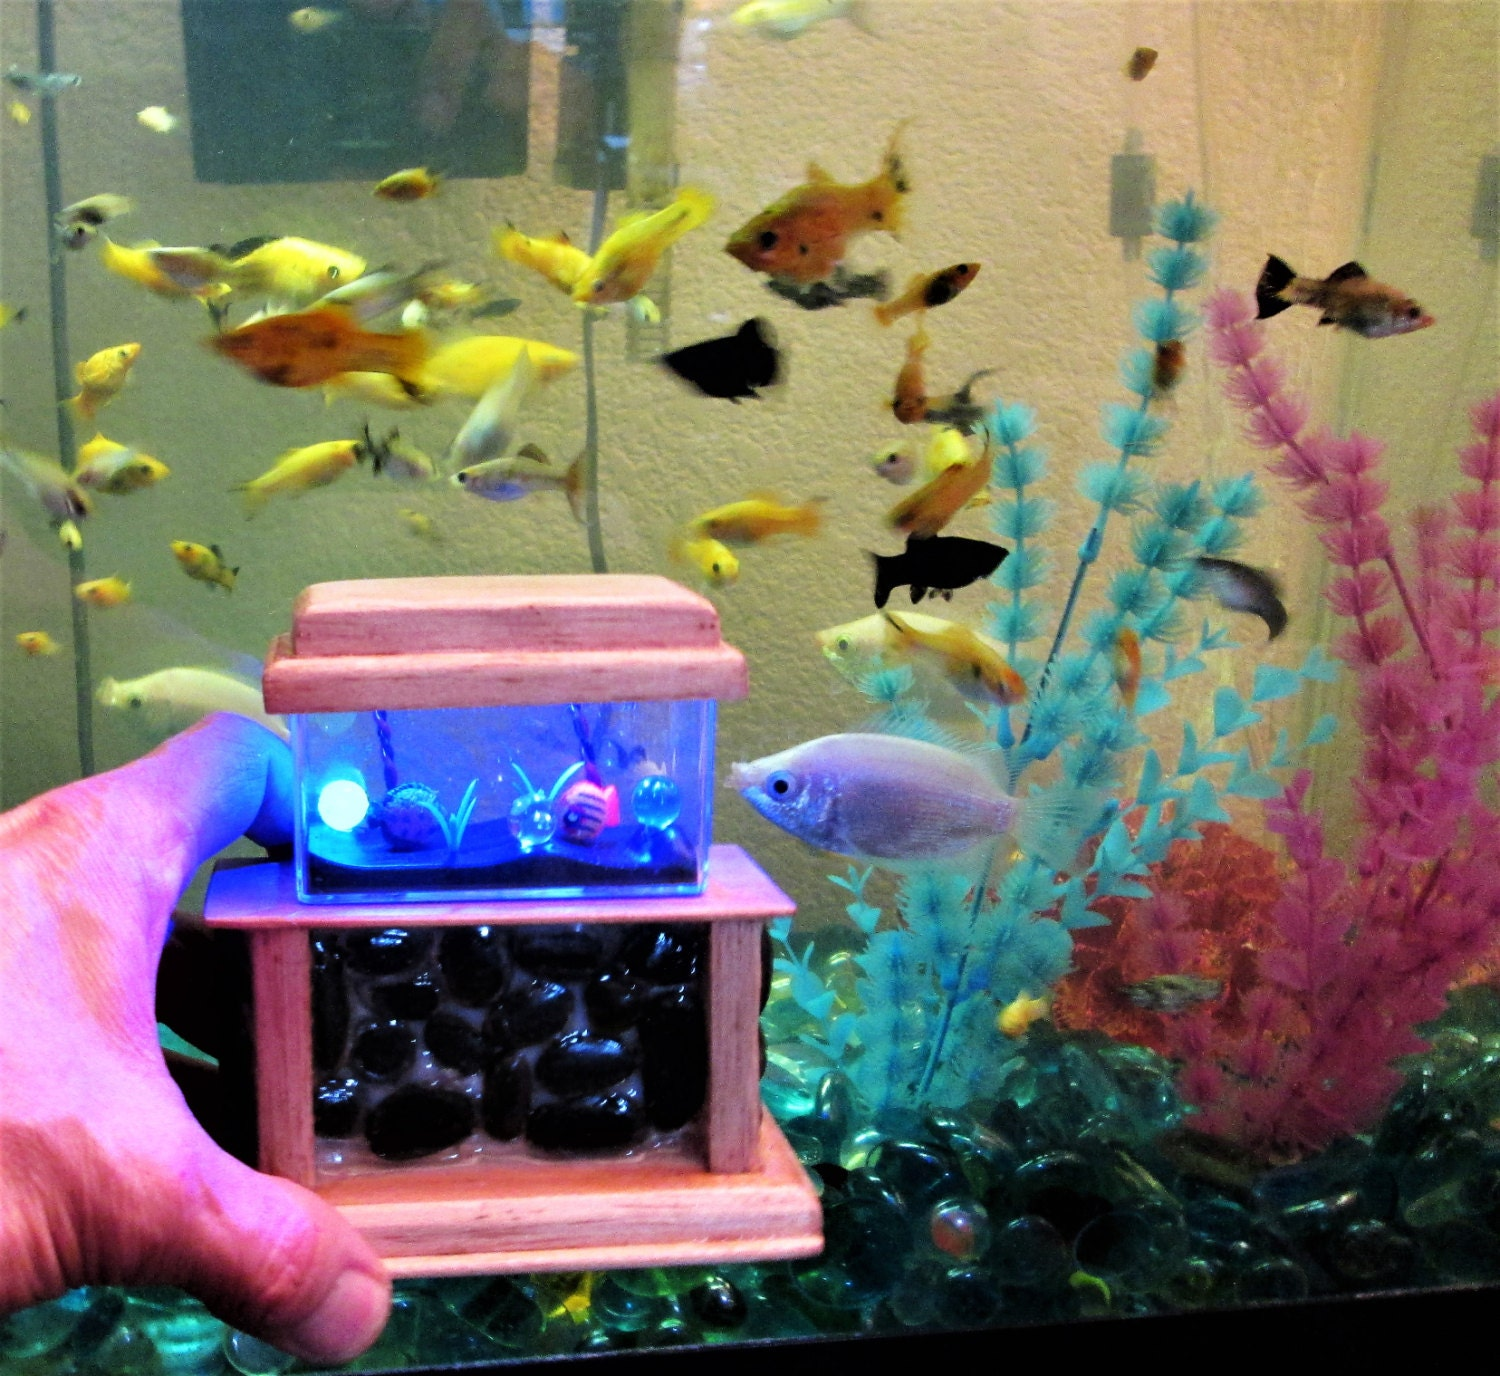 Aquarium fish tank cyprus - 1 12 Dollhouse Stone Base Aquarium Miniature Aqaurium Miniature Fish Tank Led Aquarium Toy Fish Tank Small Fish Tank